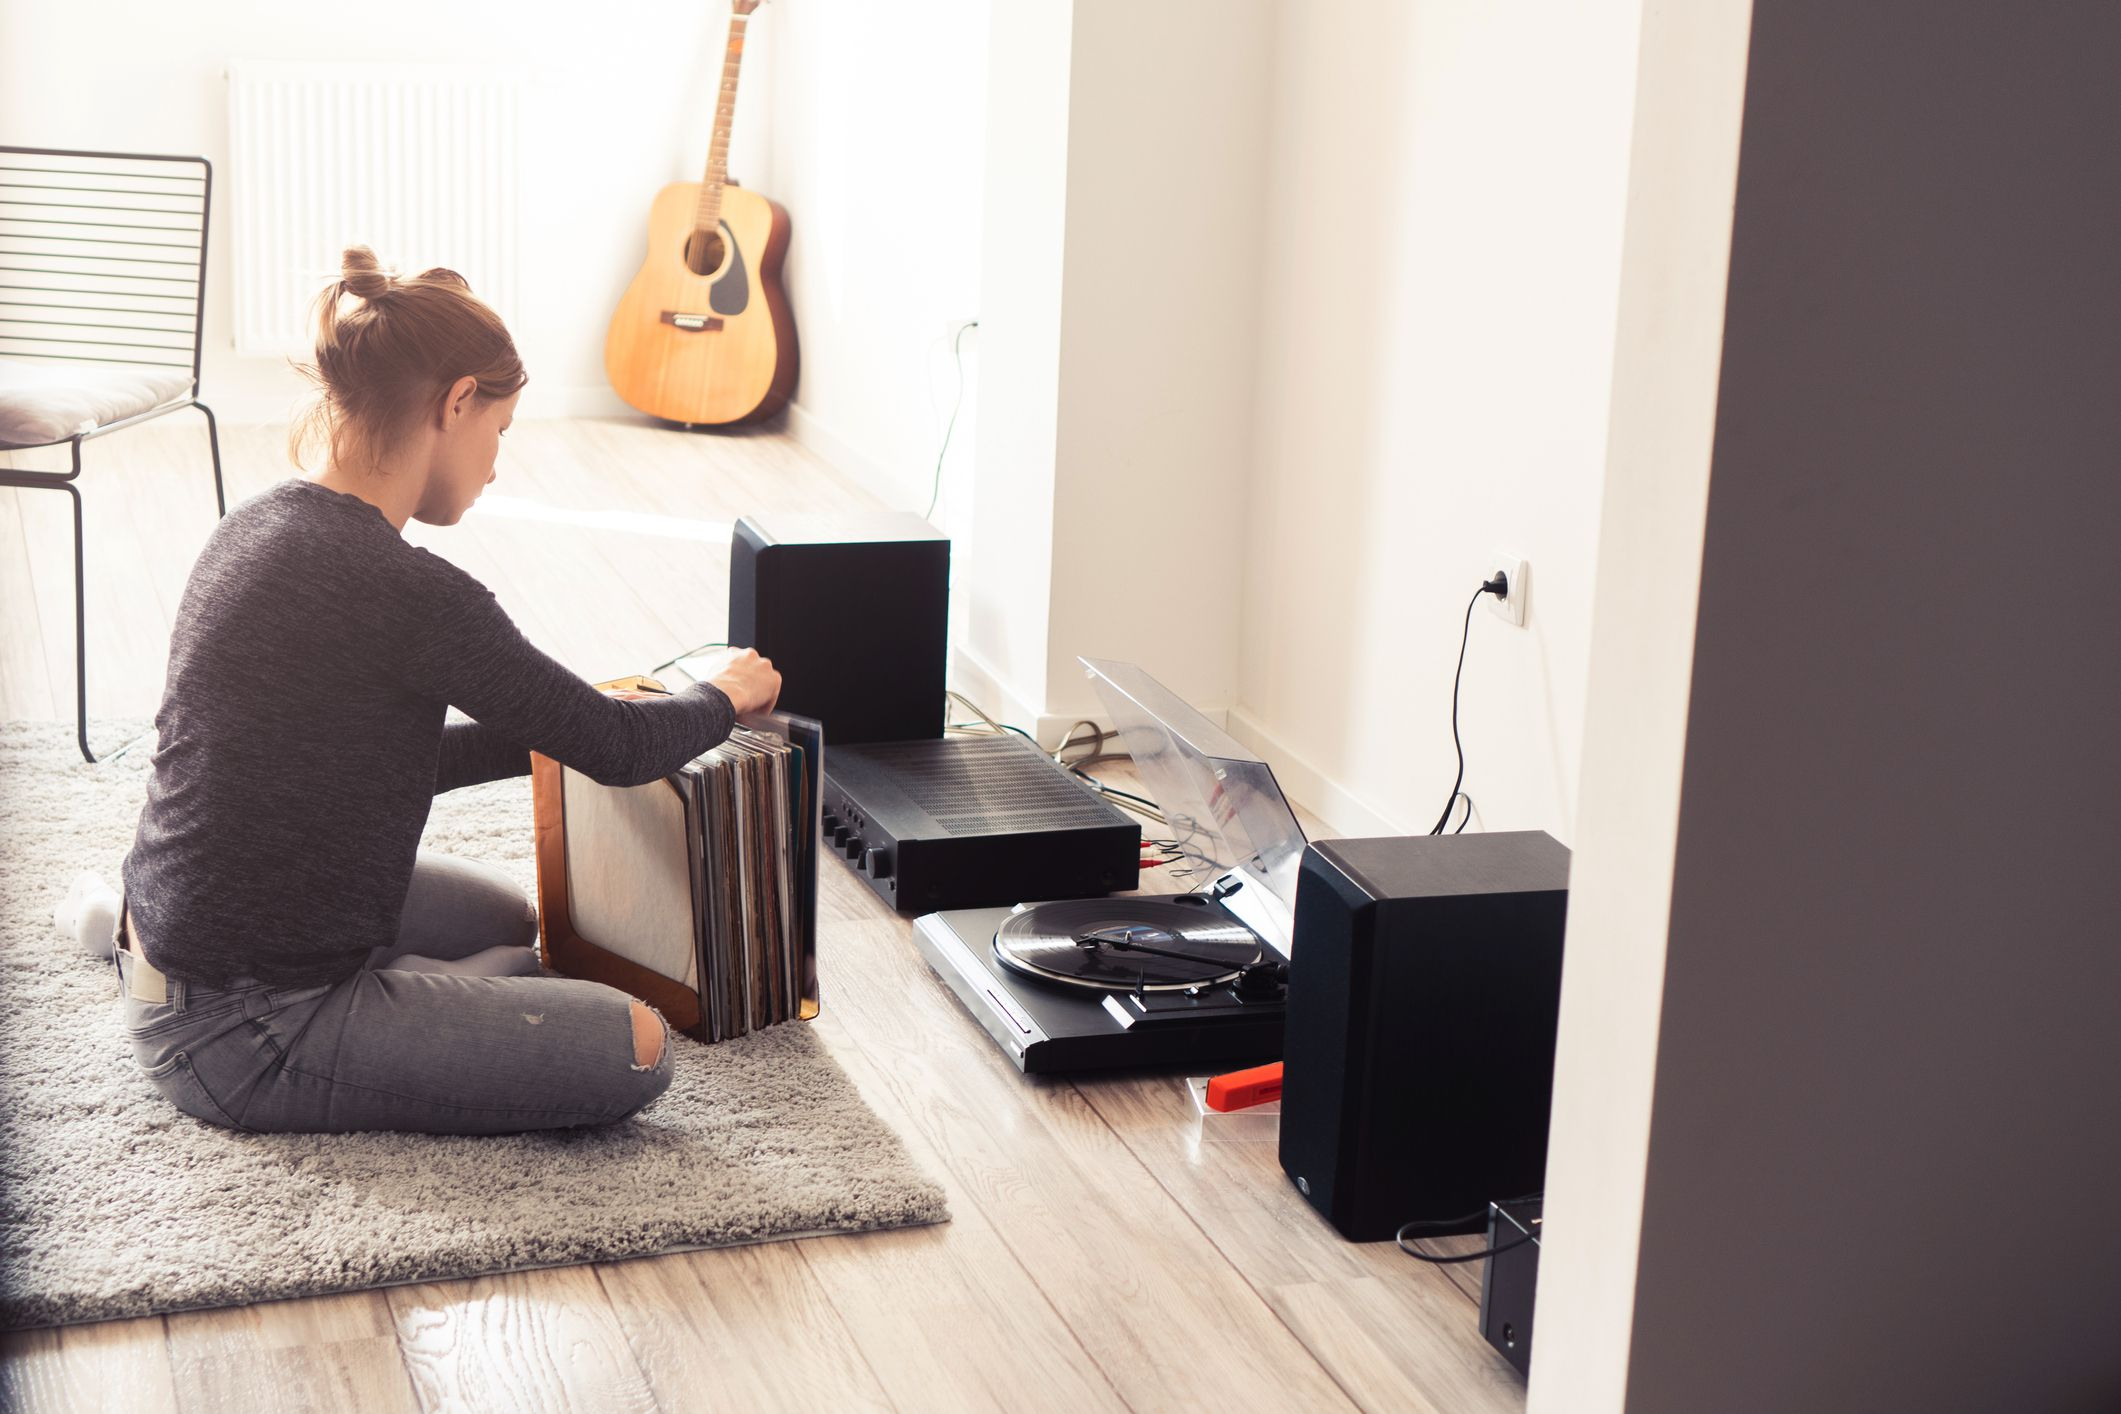 The 7 Best Speakers for Record Players of 2019